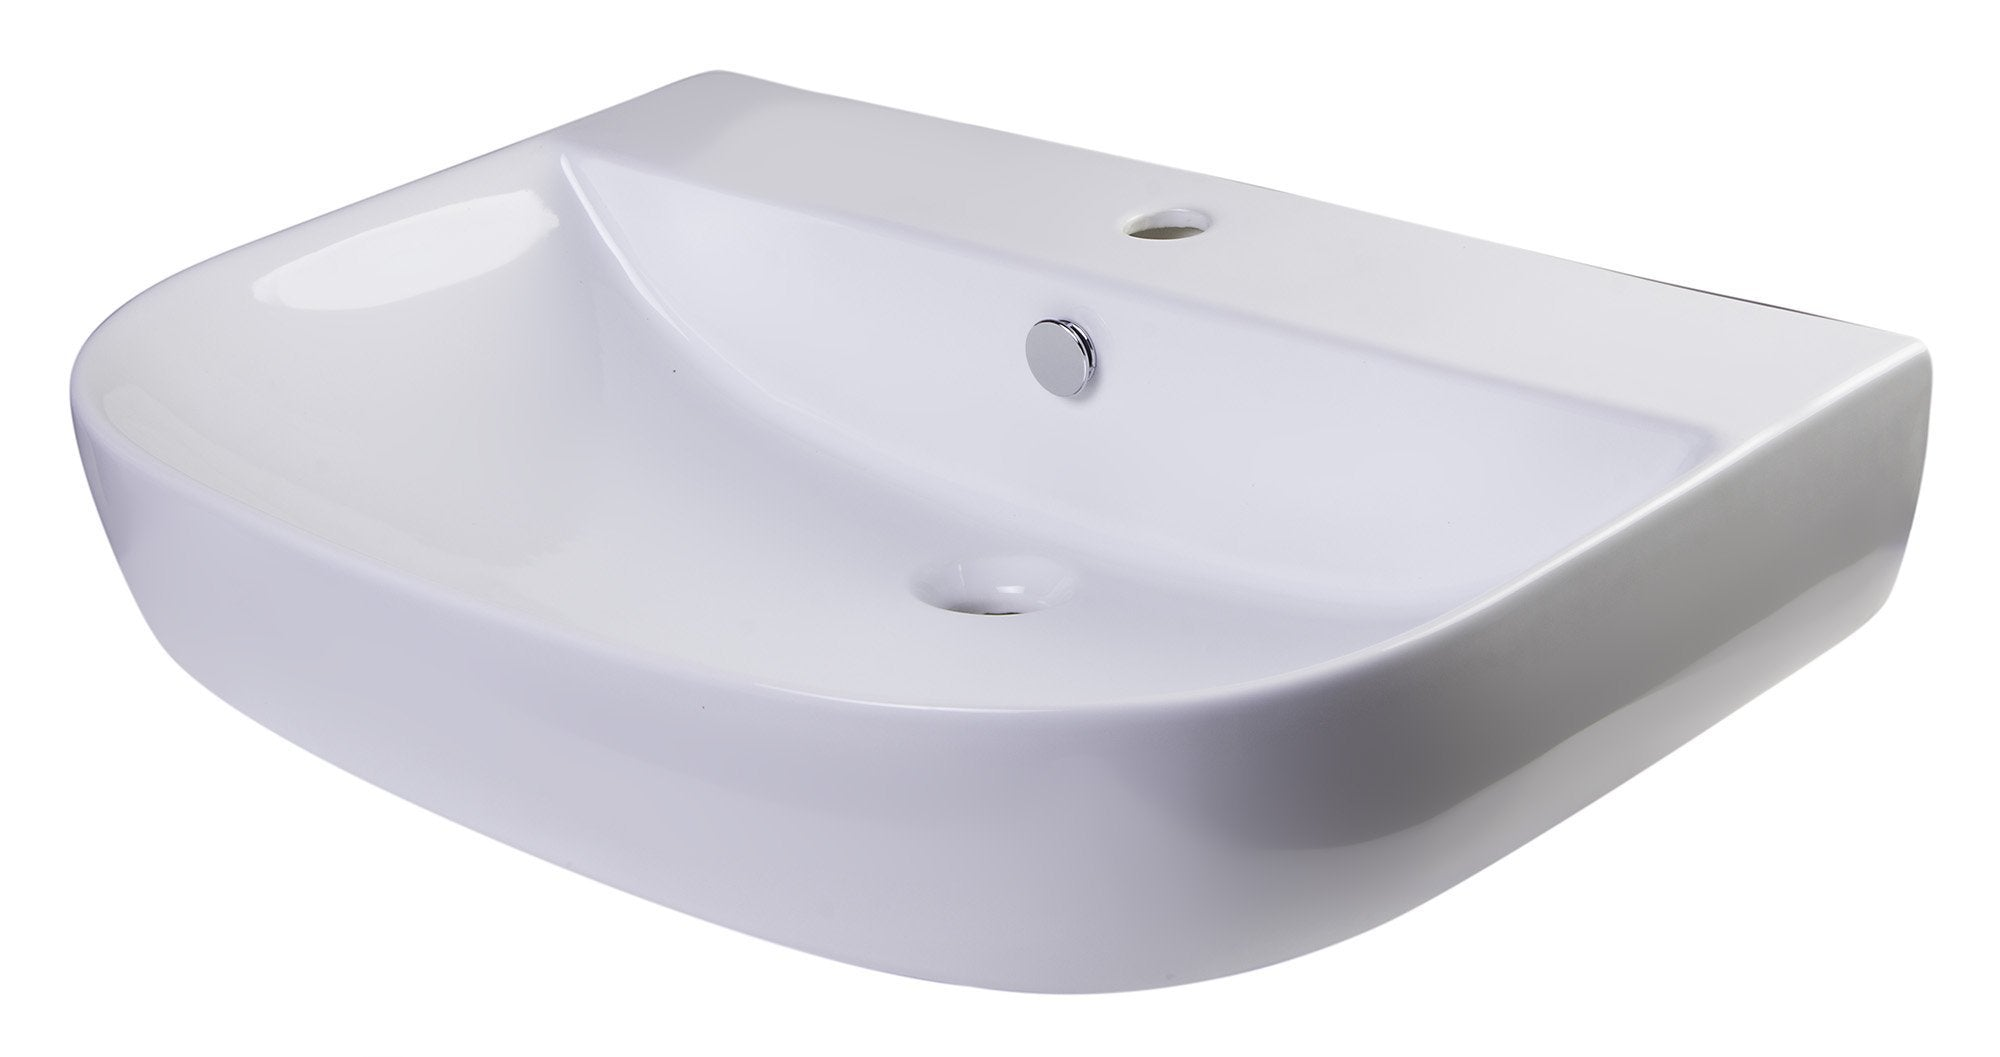 "28"" White D-Bowl Porcelain Wall Mounted Bath Sink Sink Alfi"